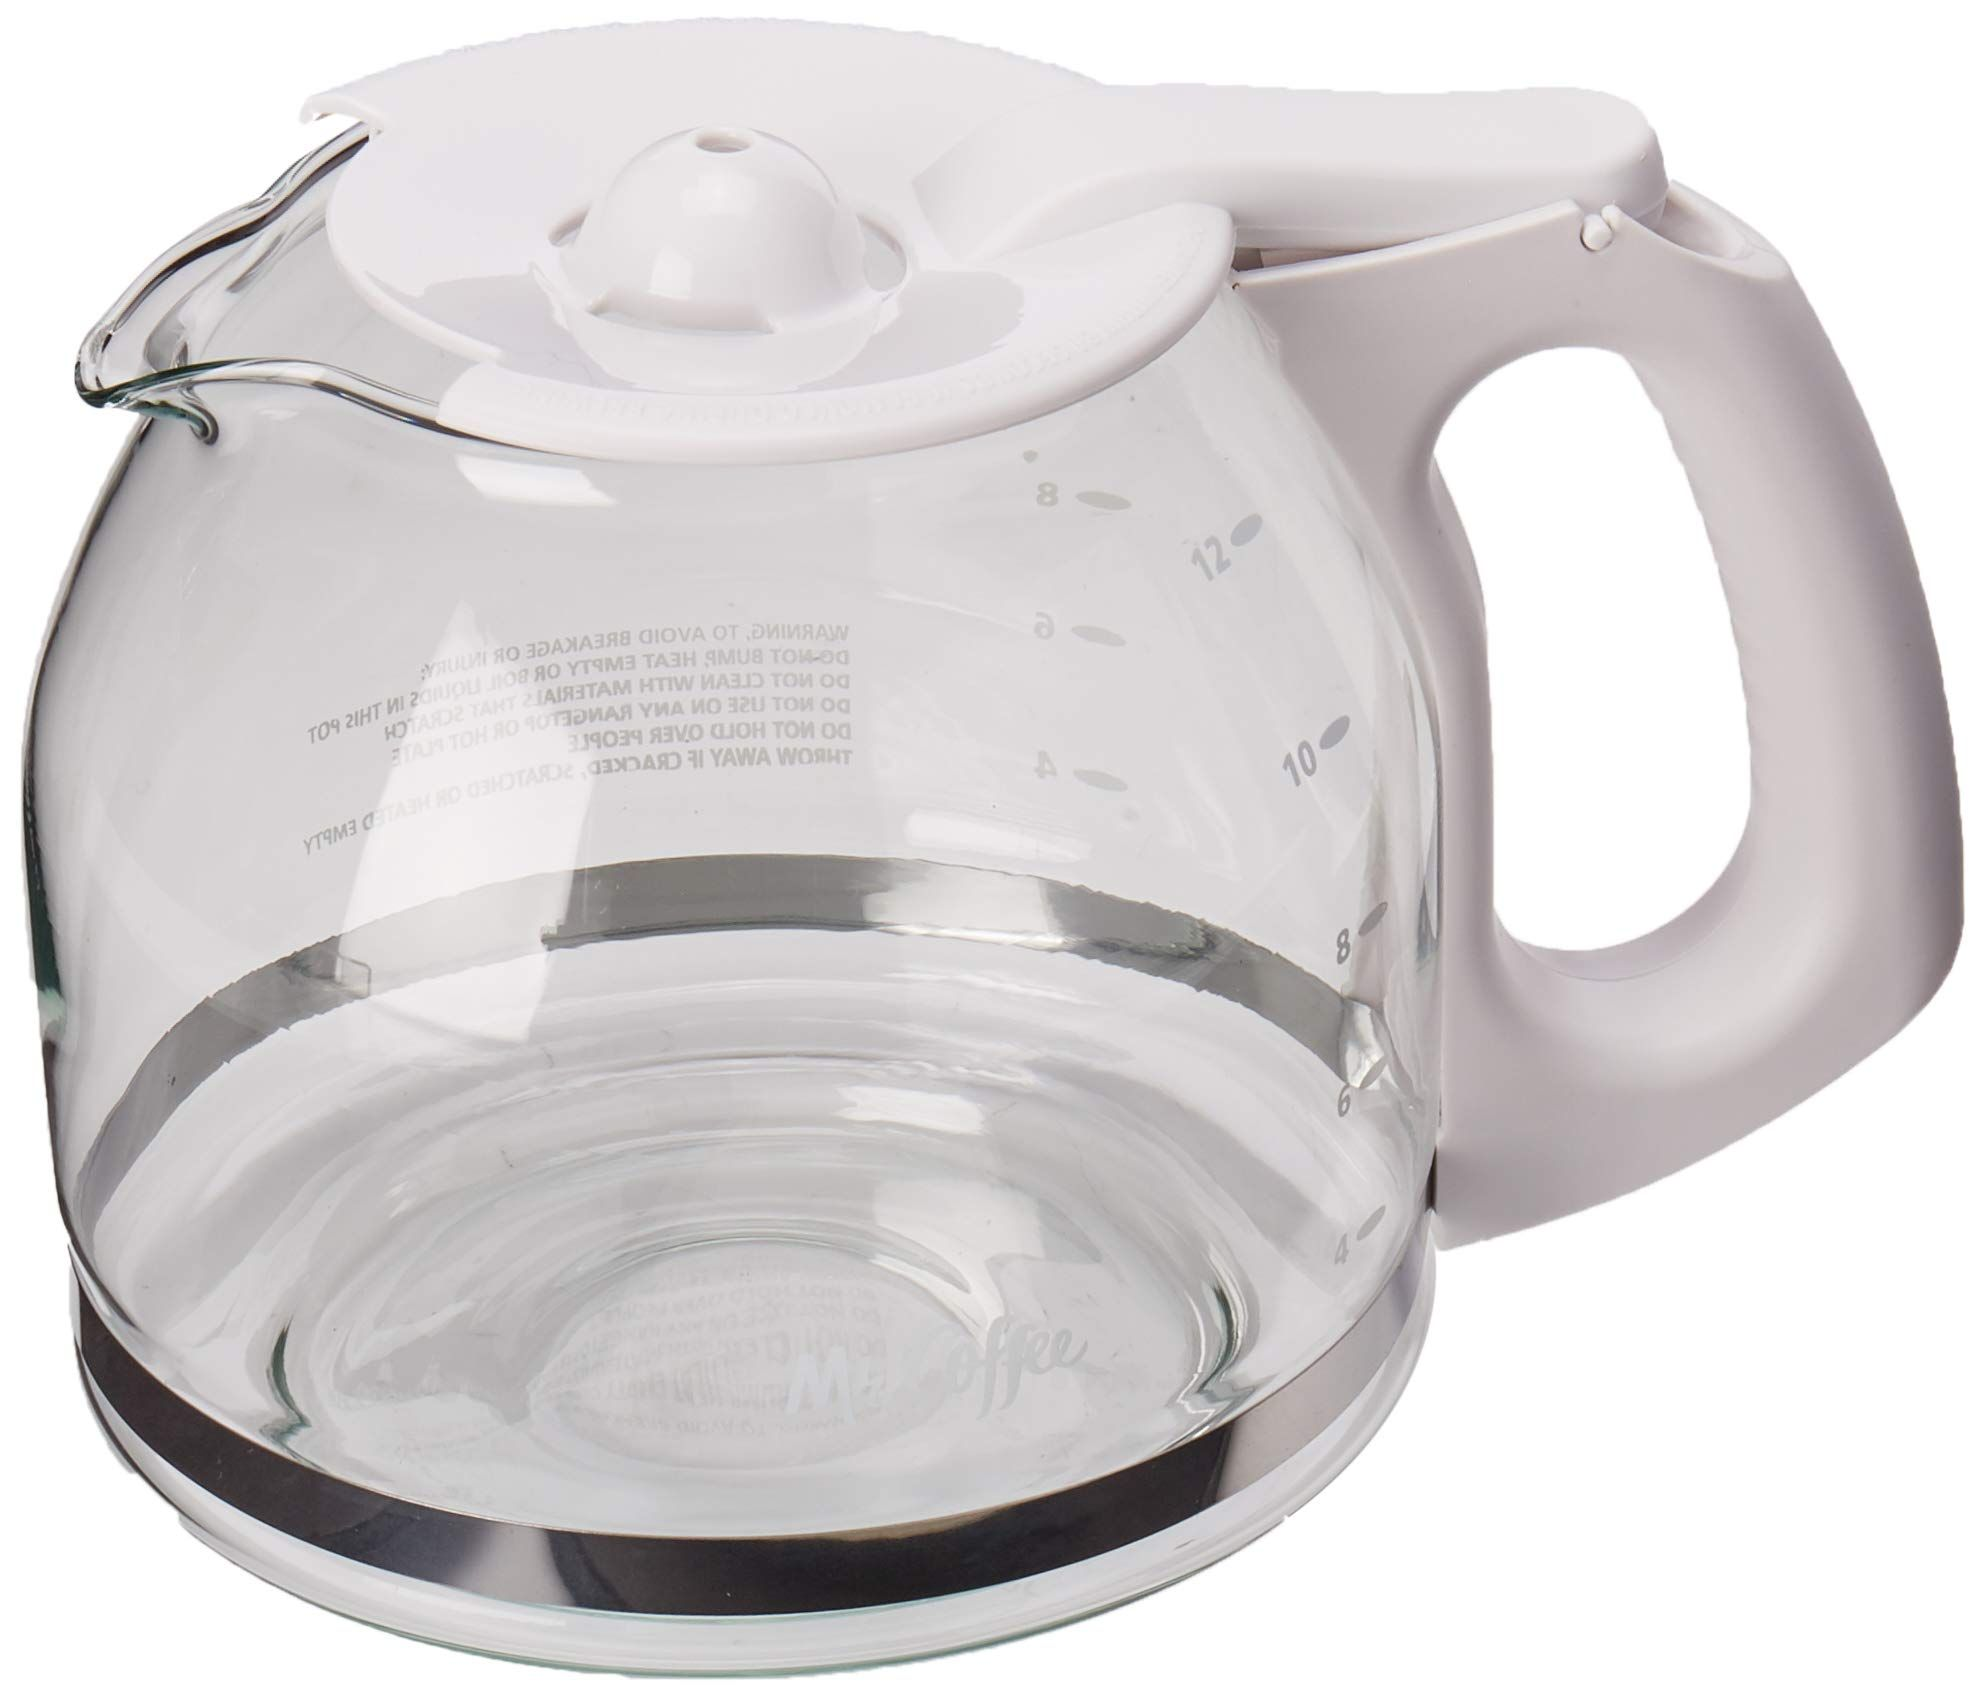 Mr Coffee Replacement 12 Cup Carafe in 2020 Mr coffee